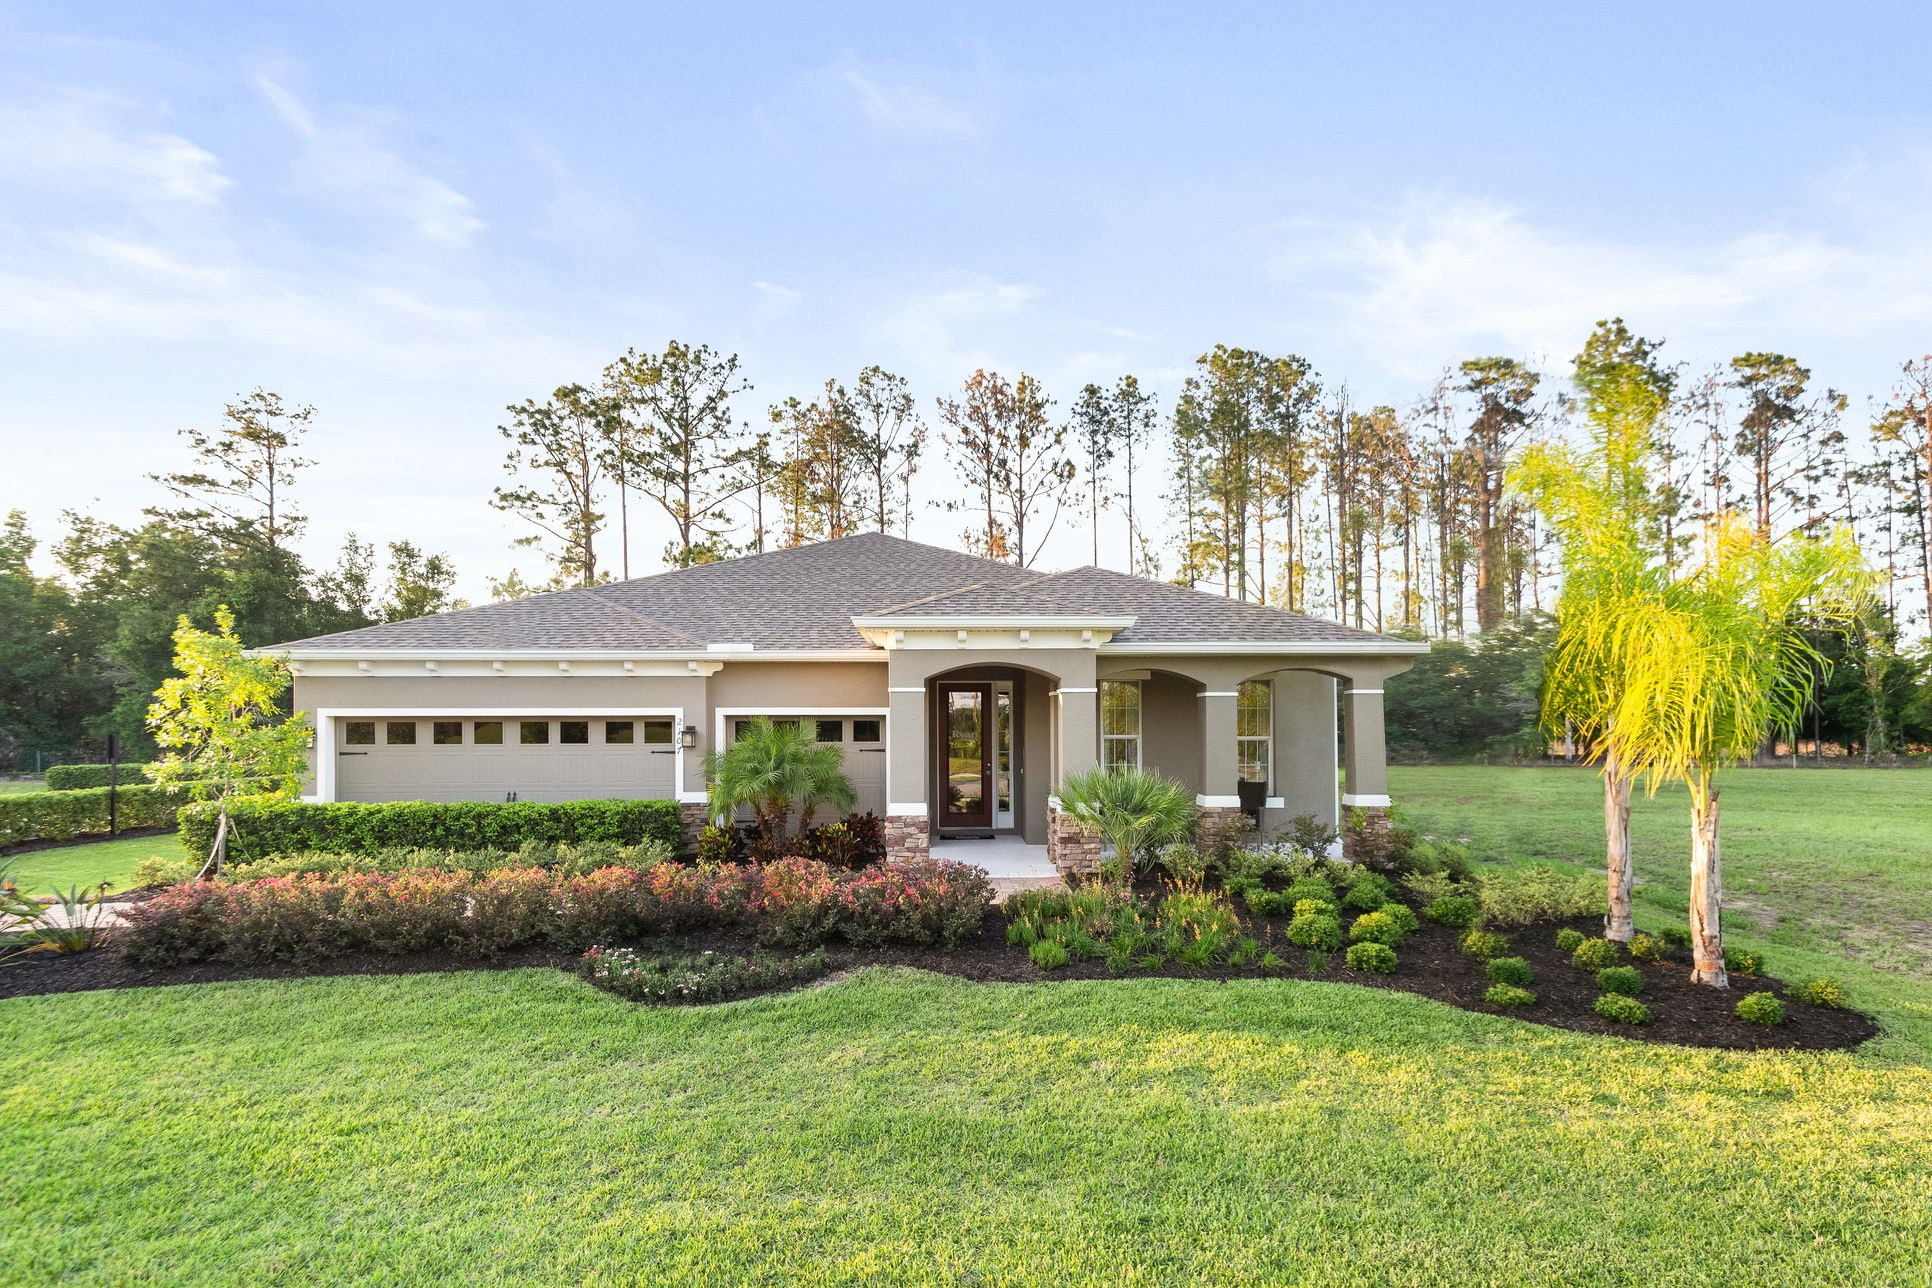 Welcome to Hamrick Estates in Apopka, FL!:Own a brand new single-family home on an oversized homesite in a picturesque, natural setting, minutes from 429, Northwest Rec Complex, schools & trails. From the upper $300s.Join the VIP List!